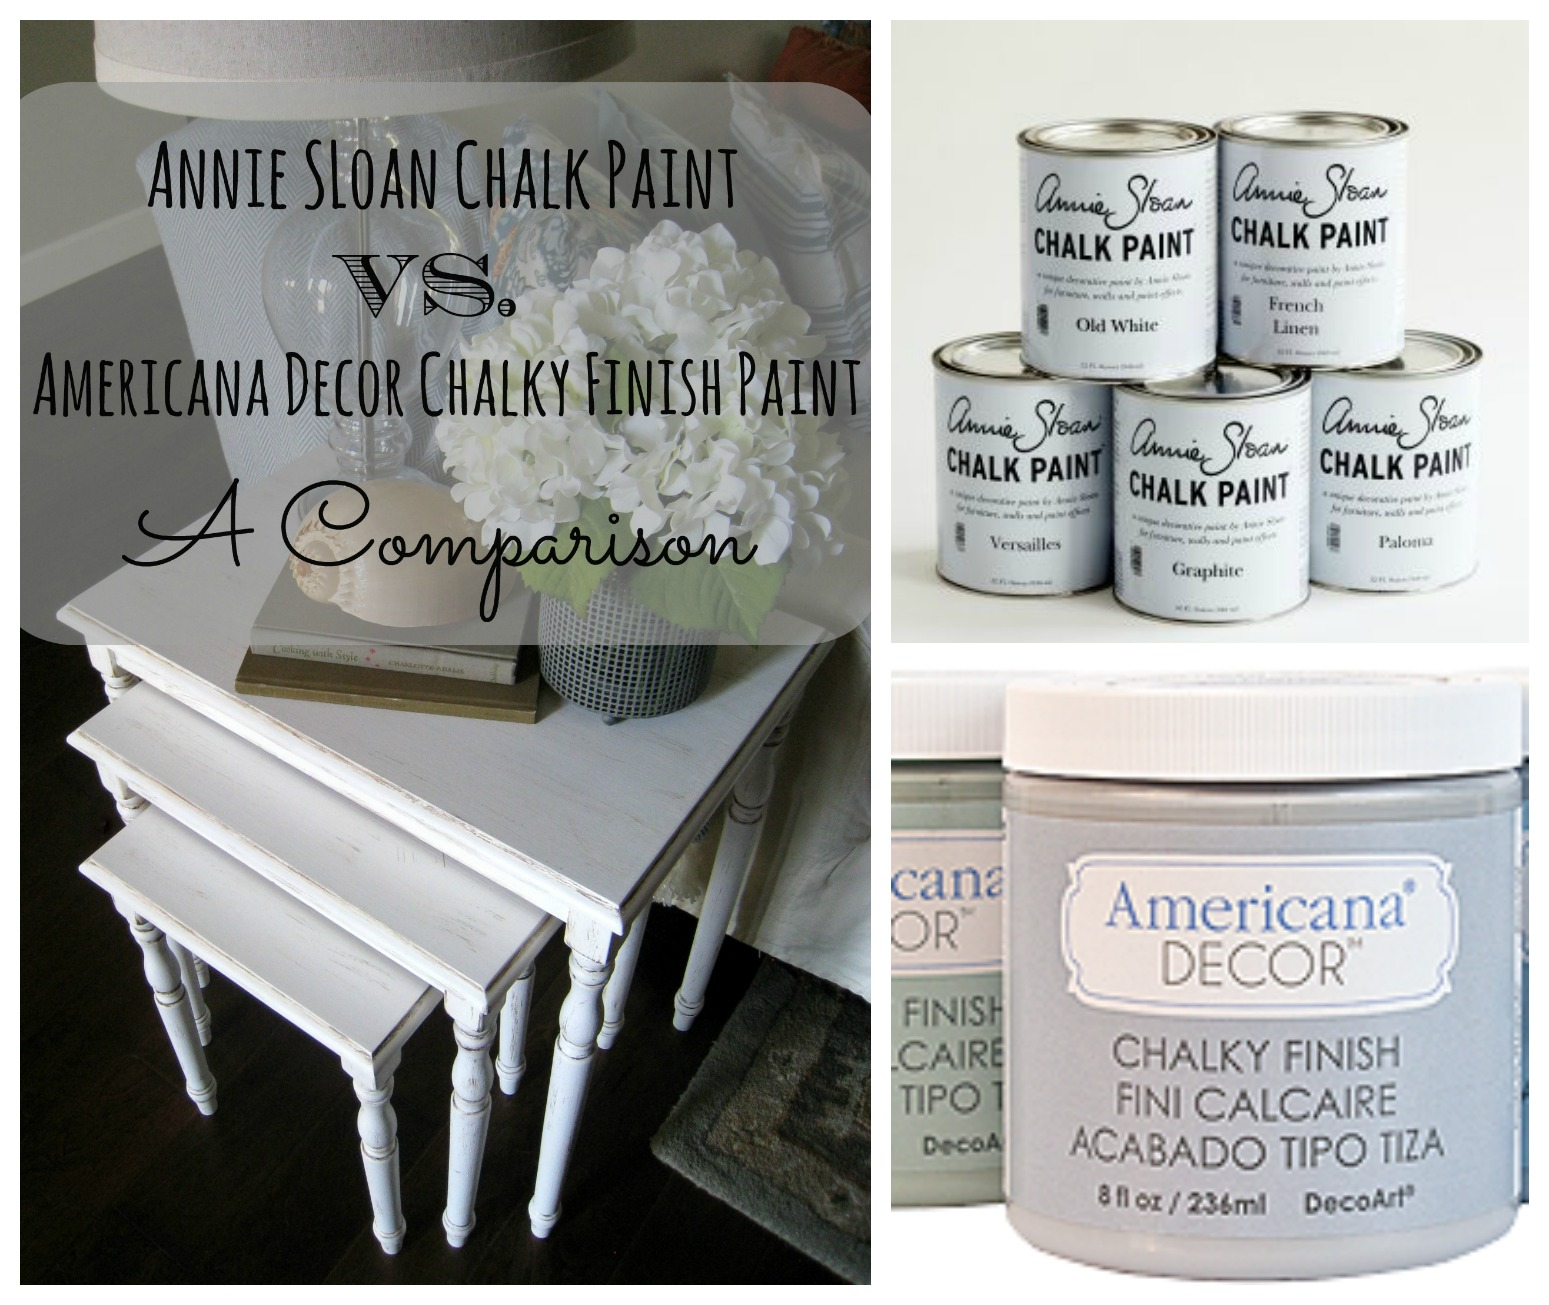 Annie Sloan Chalk Paint Vs Americana Decor Chalky Finish